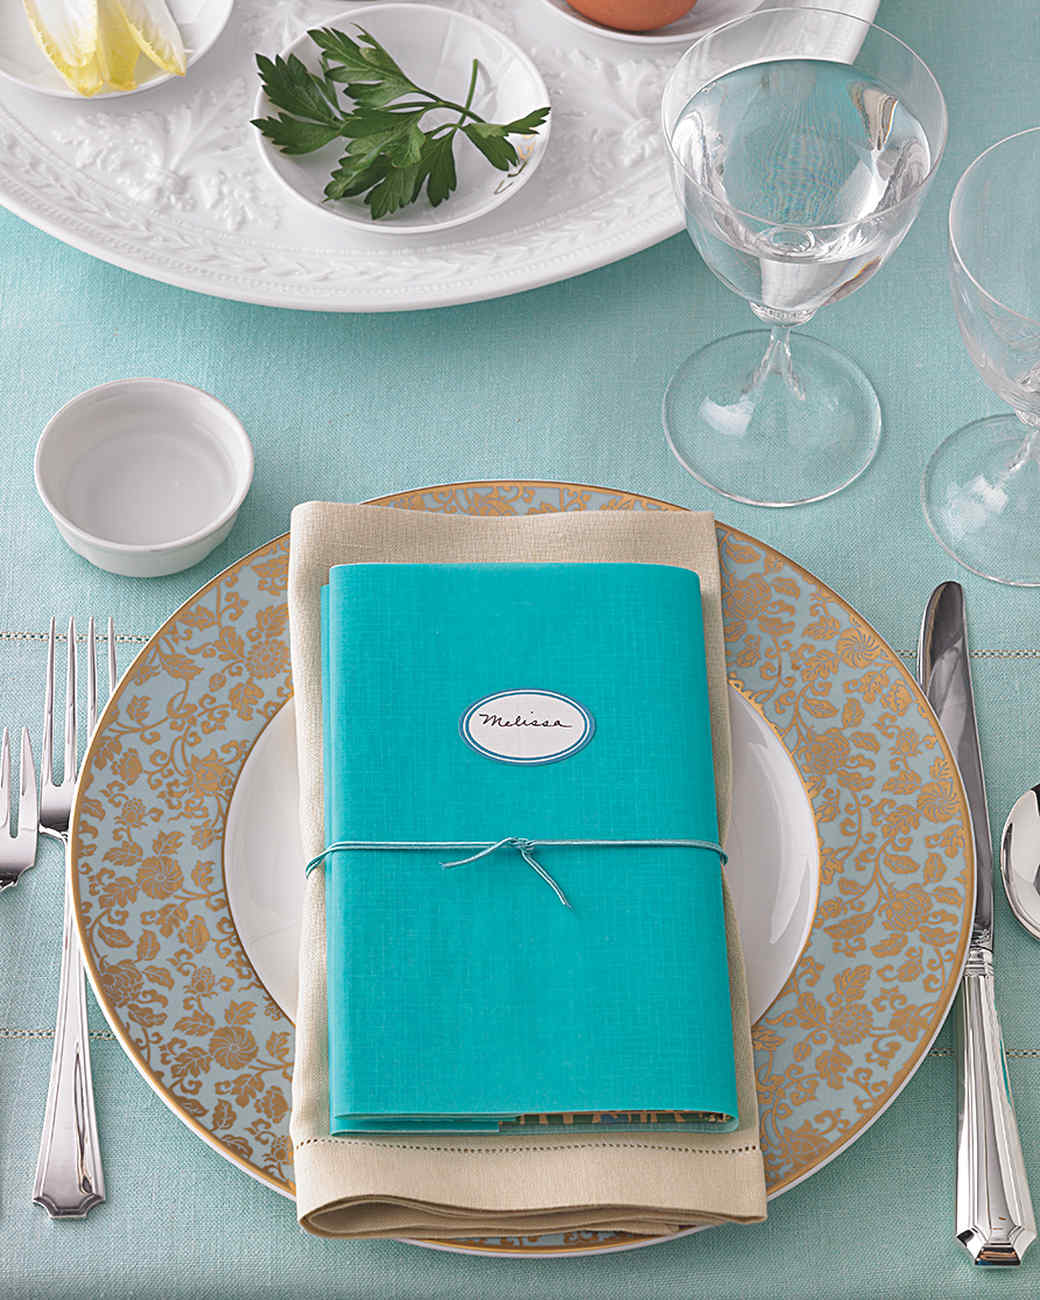 15 Passover Entertaining Ideas For The Whole Family Martha Stewart